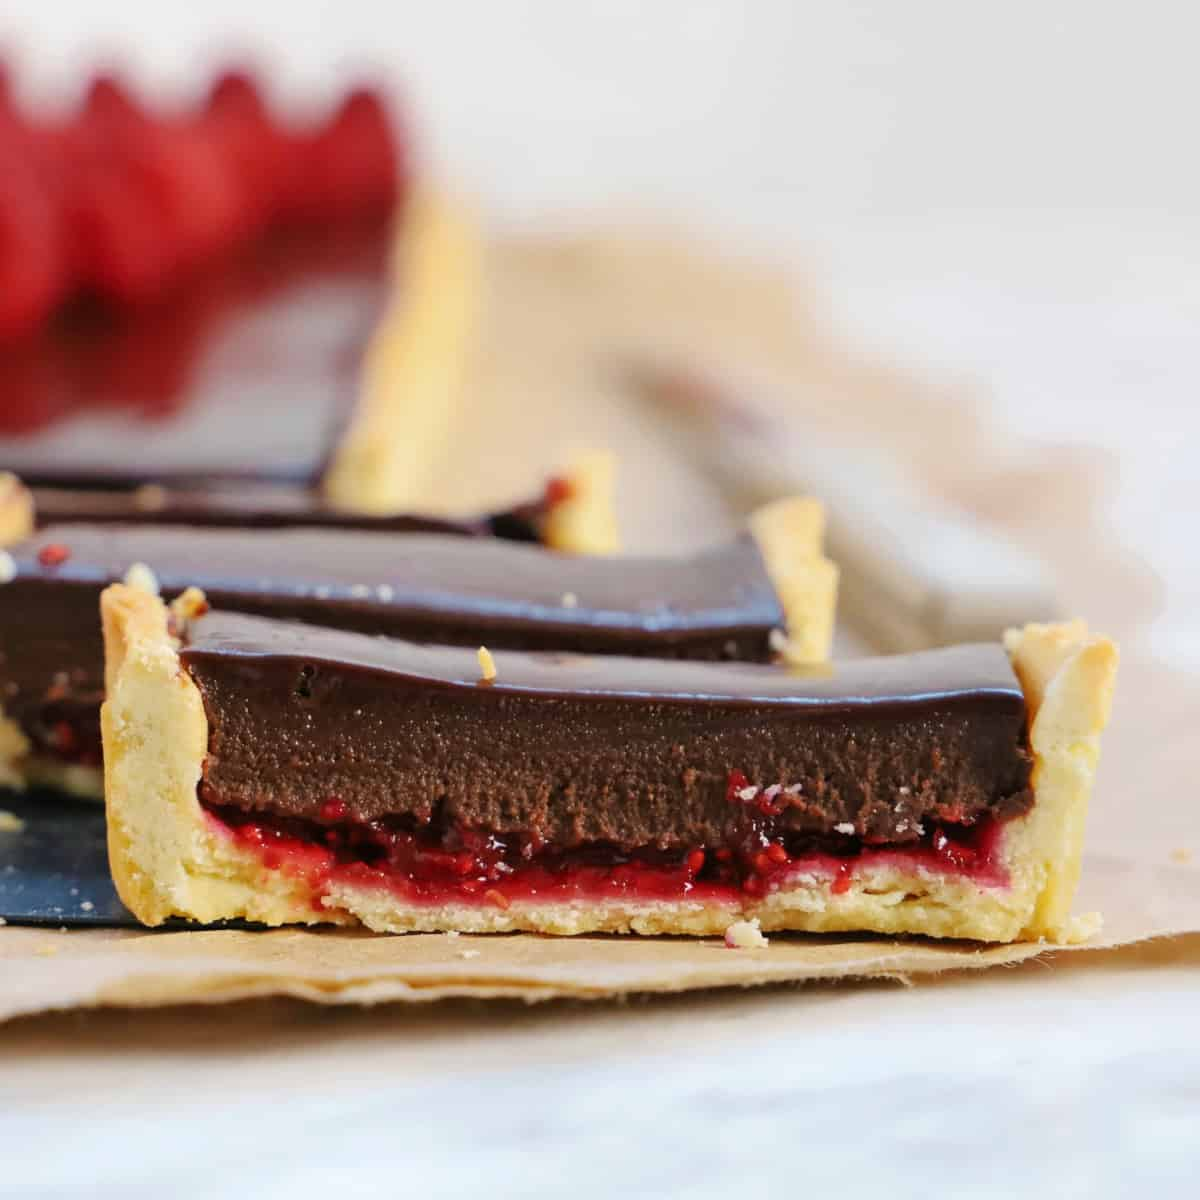 Square photo of a close up of a sliced chocolate tart with raspberry jam.